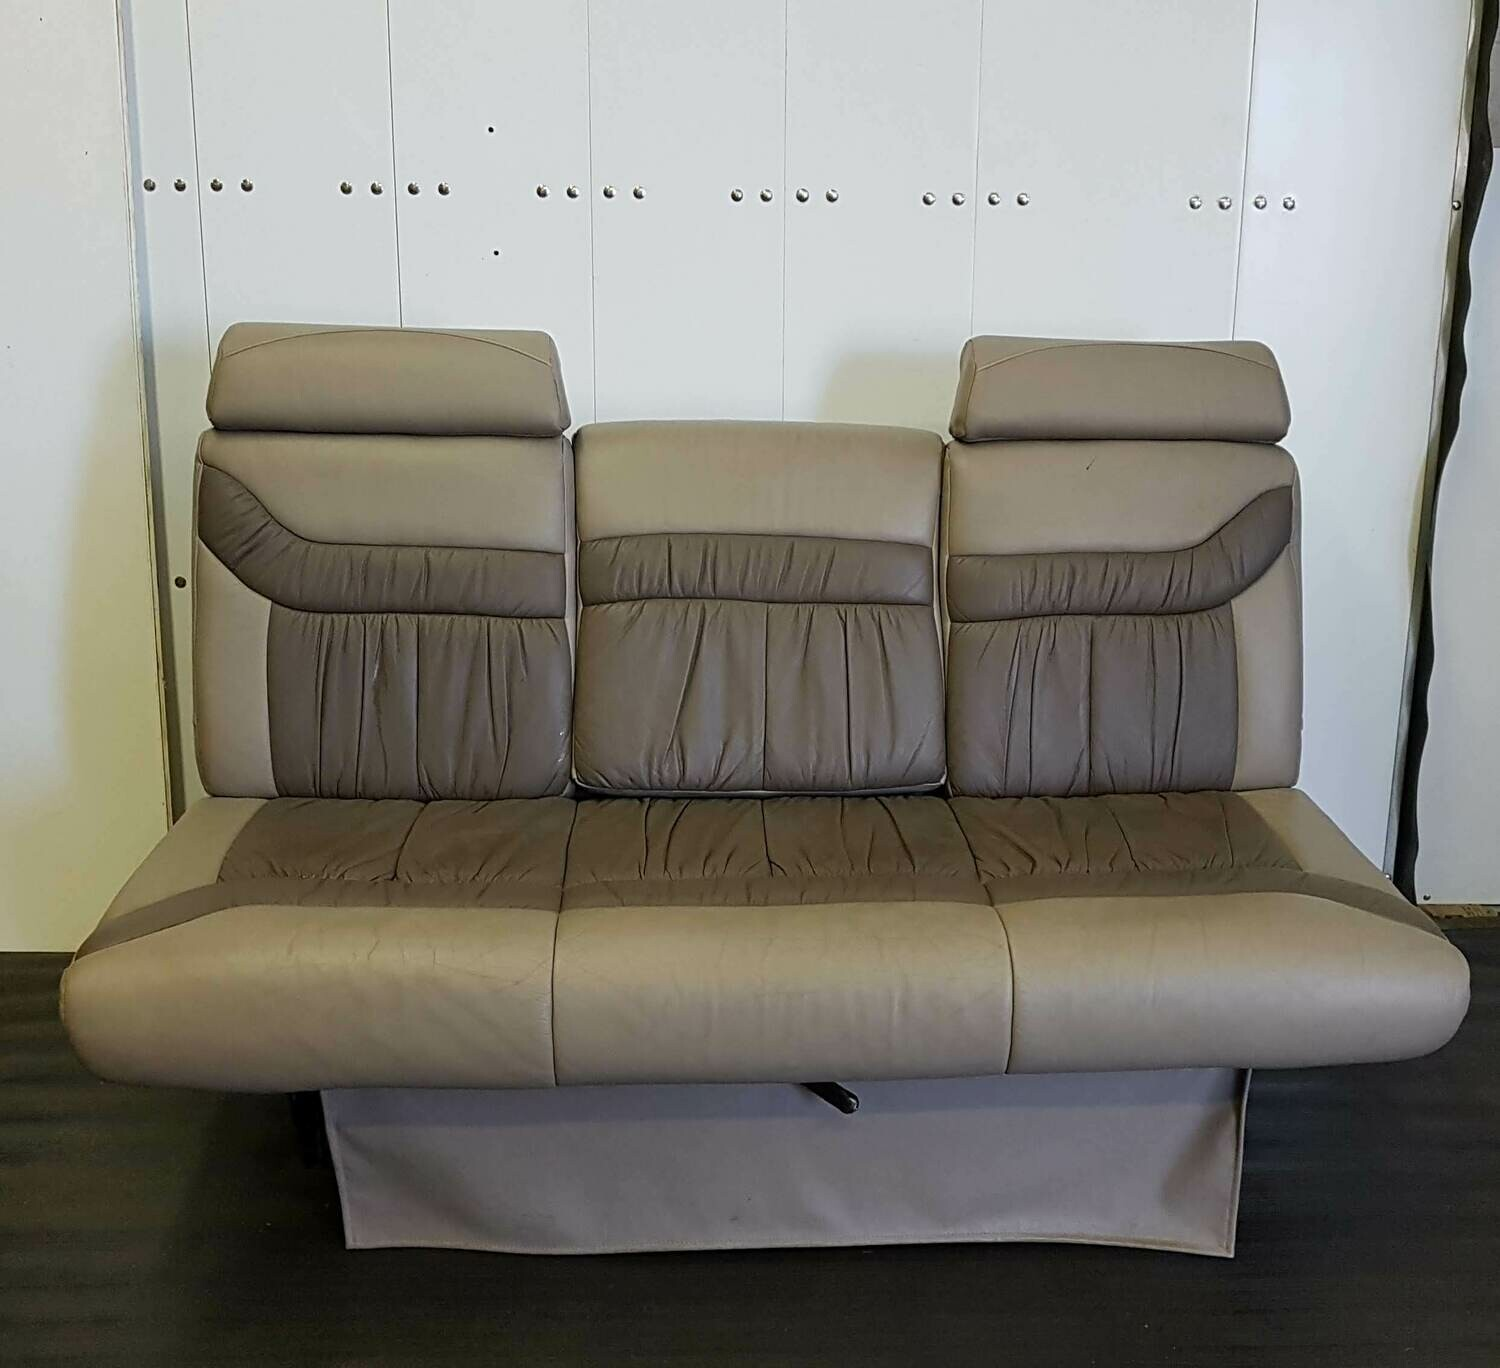 Sofa Bed for RVs